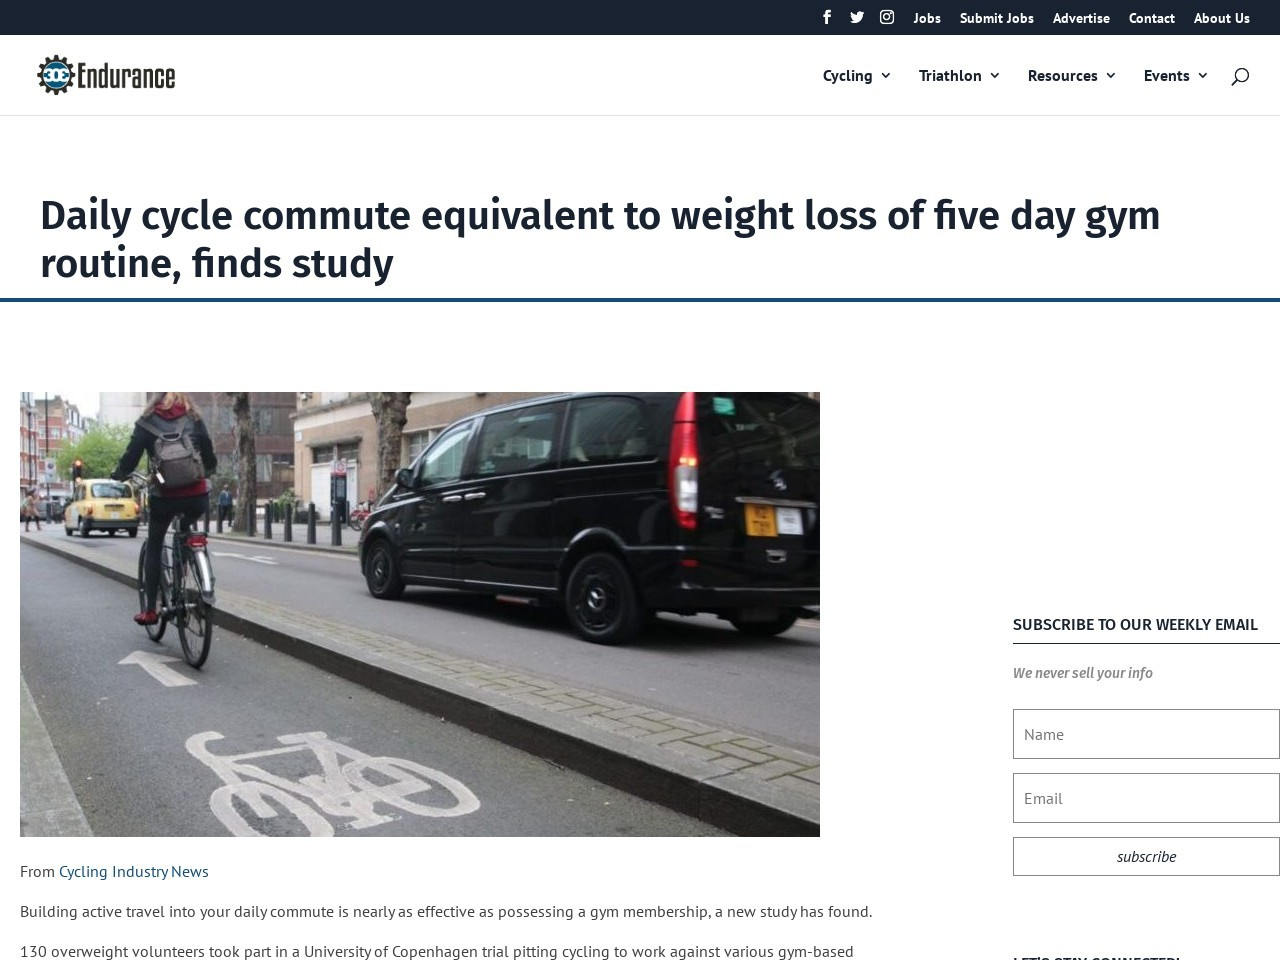 Daily cycle commute equivalent to weight loss of five day gym routine, finds study